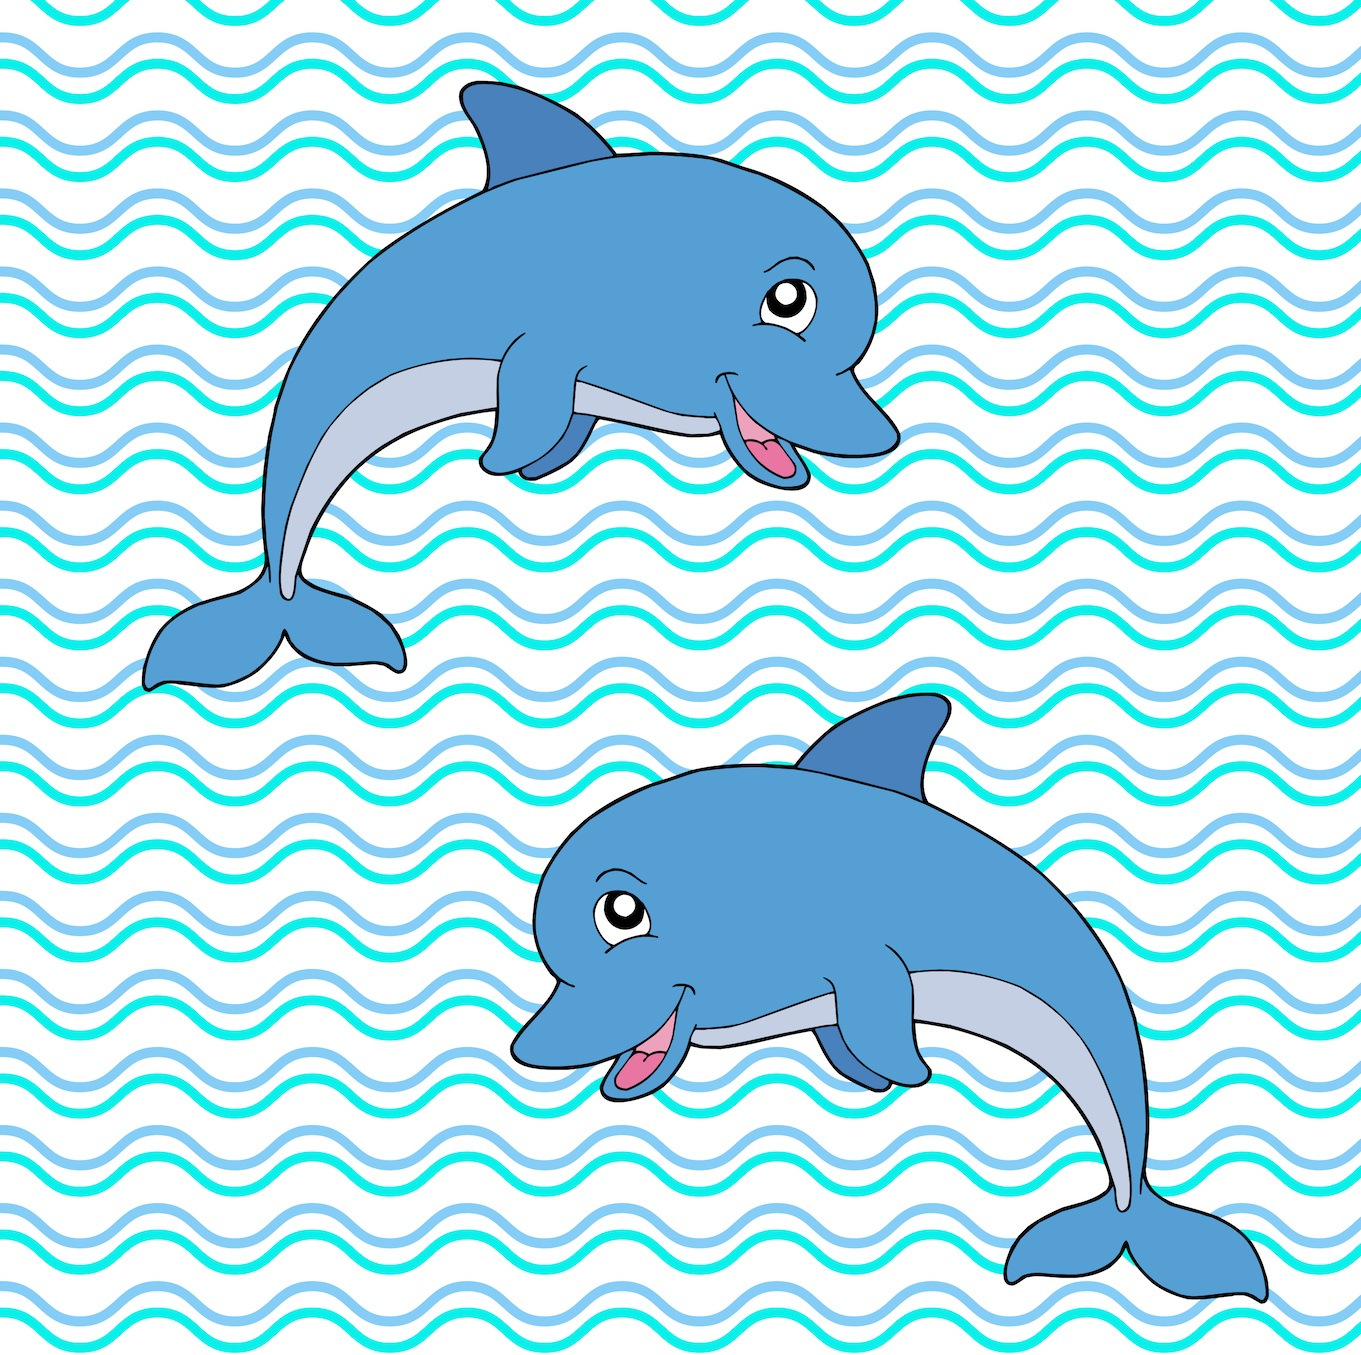 dolphins+no+text.jpg